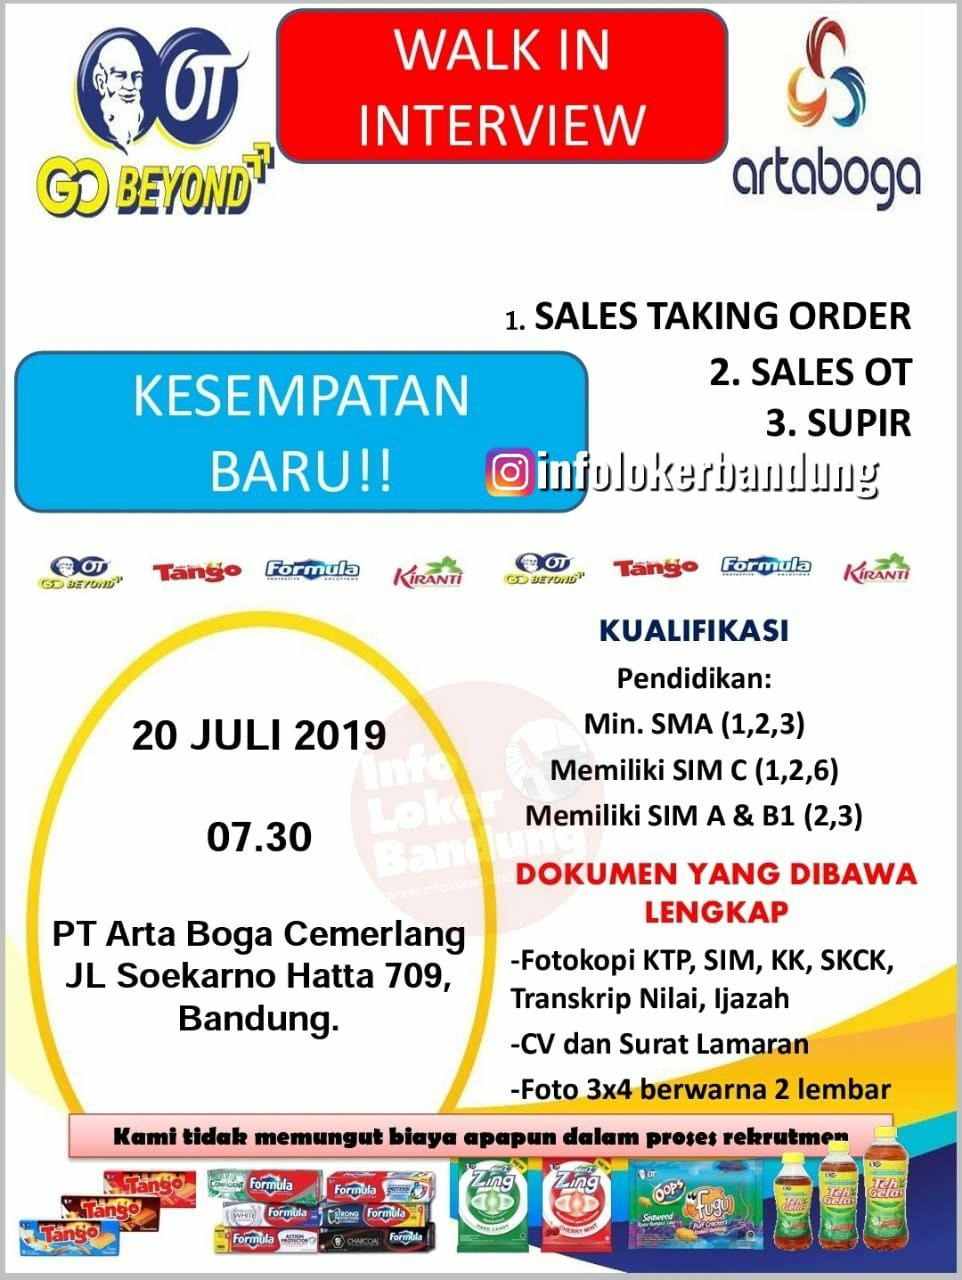 Walk In Interview PT. Arta Boga Cemerlang 20 & 22 Juli 2019